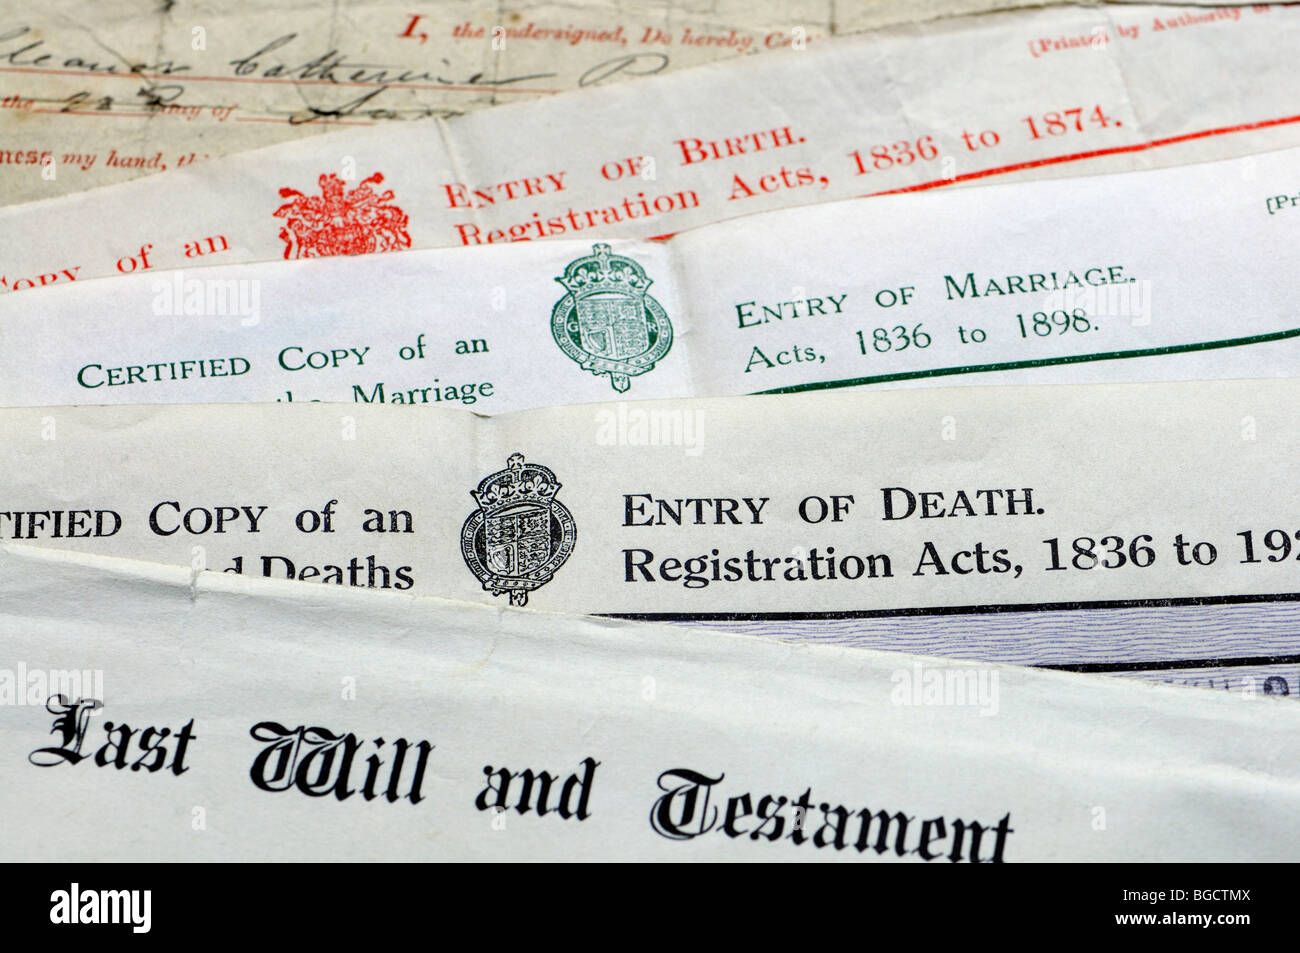 Genealogy documents - Certificates of birth, marriage and death and last will and testament - Stock Image